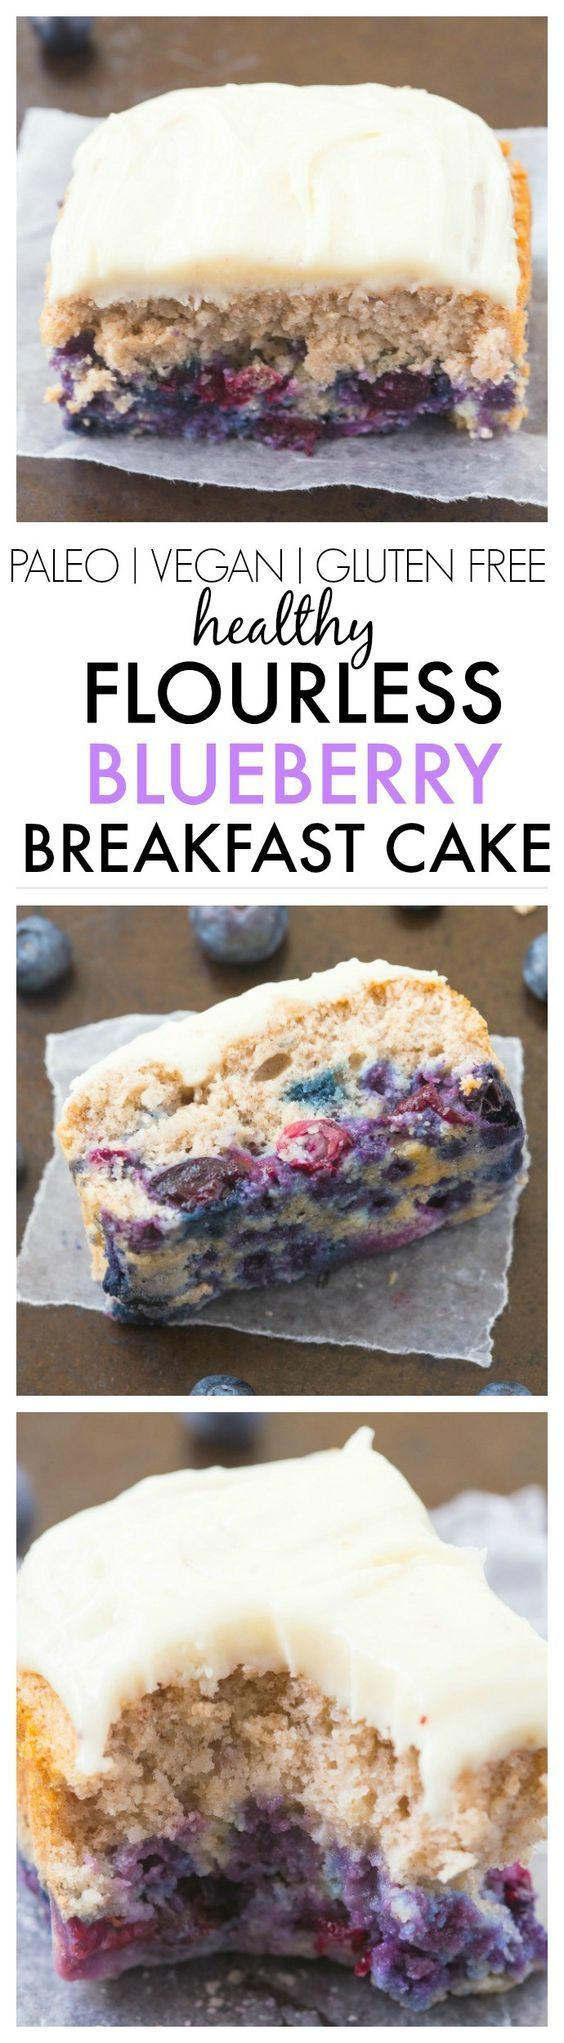 Healthy Flourless Blueberry Breakfast Cake- Light and fluffy on the inside, tender on the outside, have a guilt free dessert for breakfast- NO butter, oil, flour or sugar! {vegan, gluten free, paleo recipe}- http://thebigmansworld.com